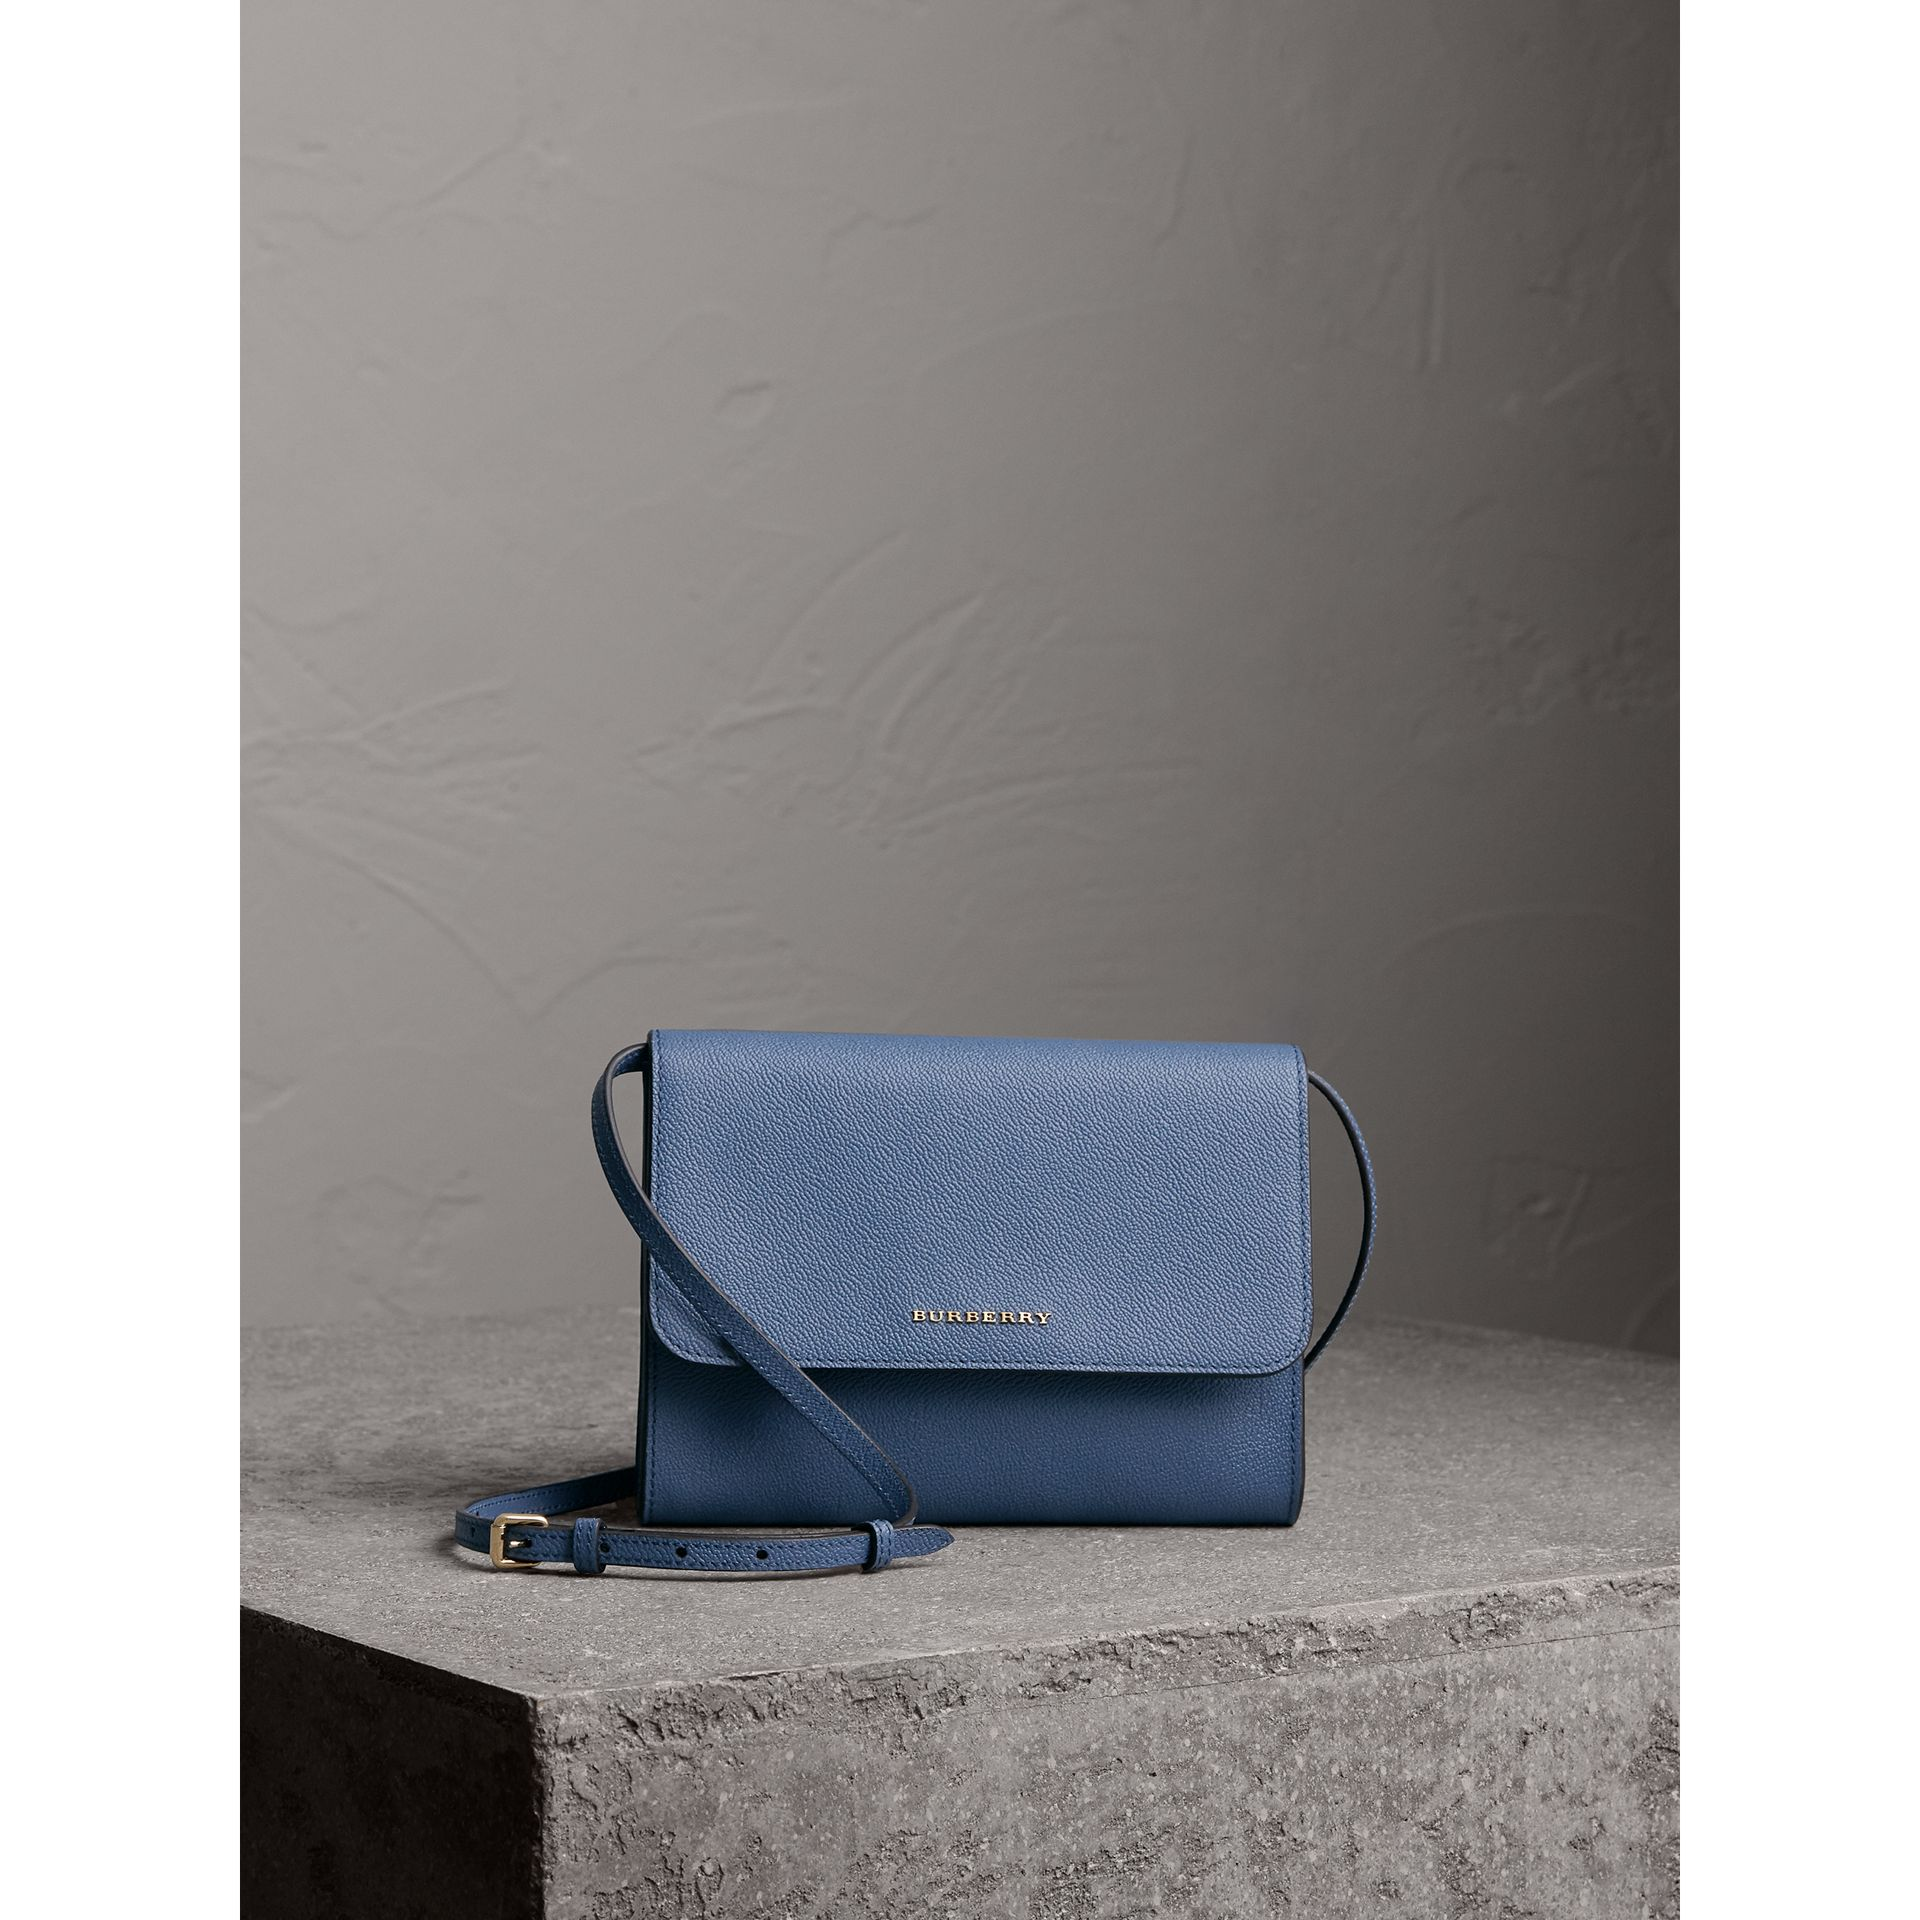 Grainy Leather Crossbody Bag in Steel Blue - Women | Burberry - gallery image 1